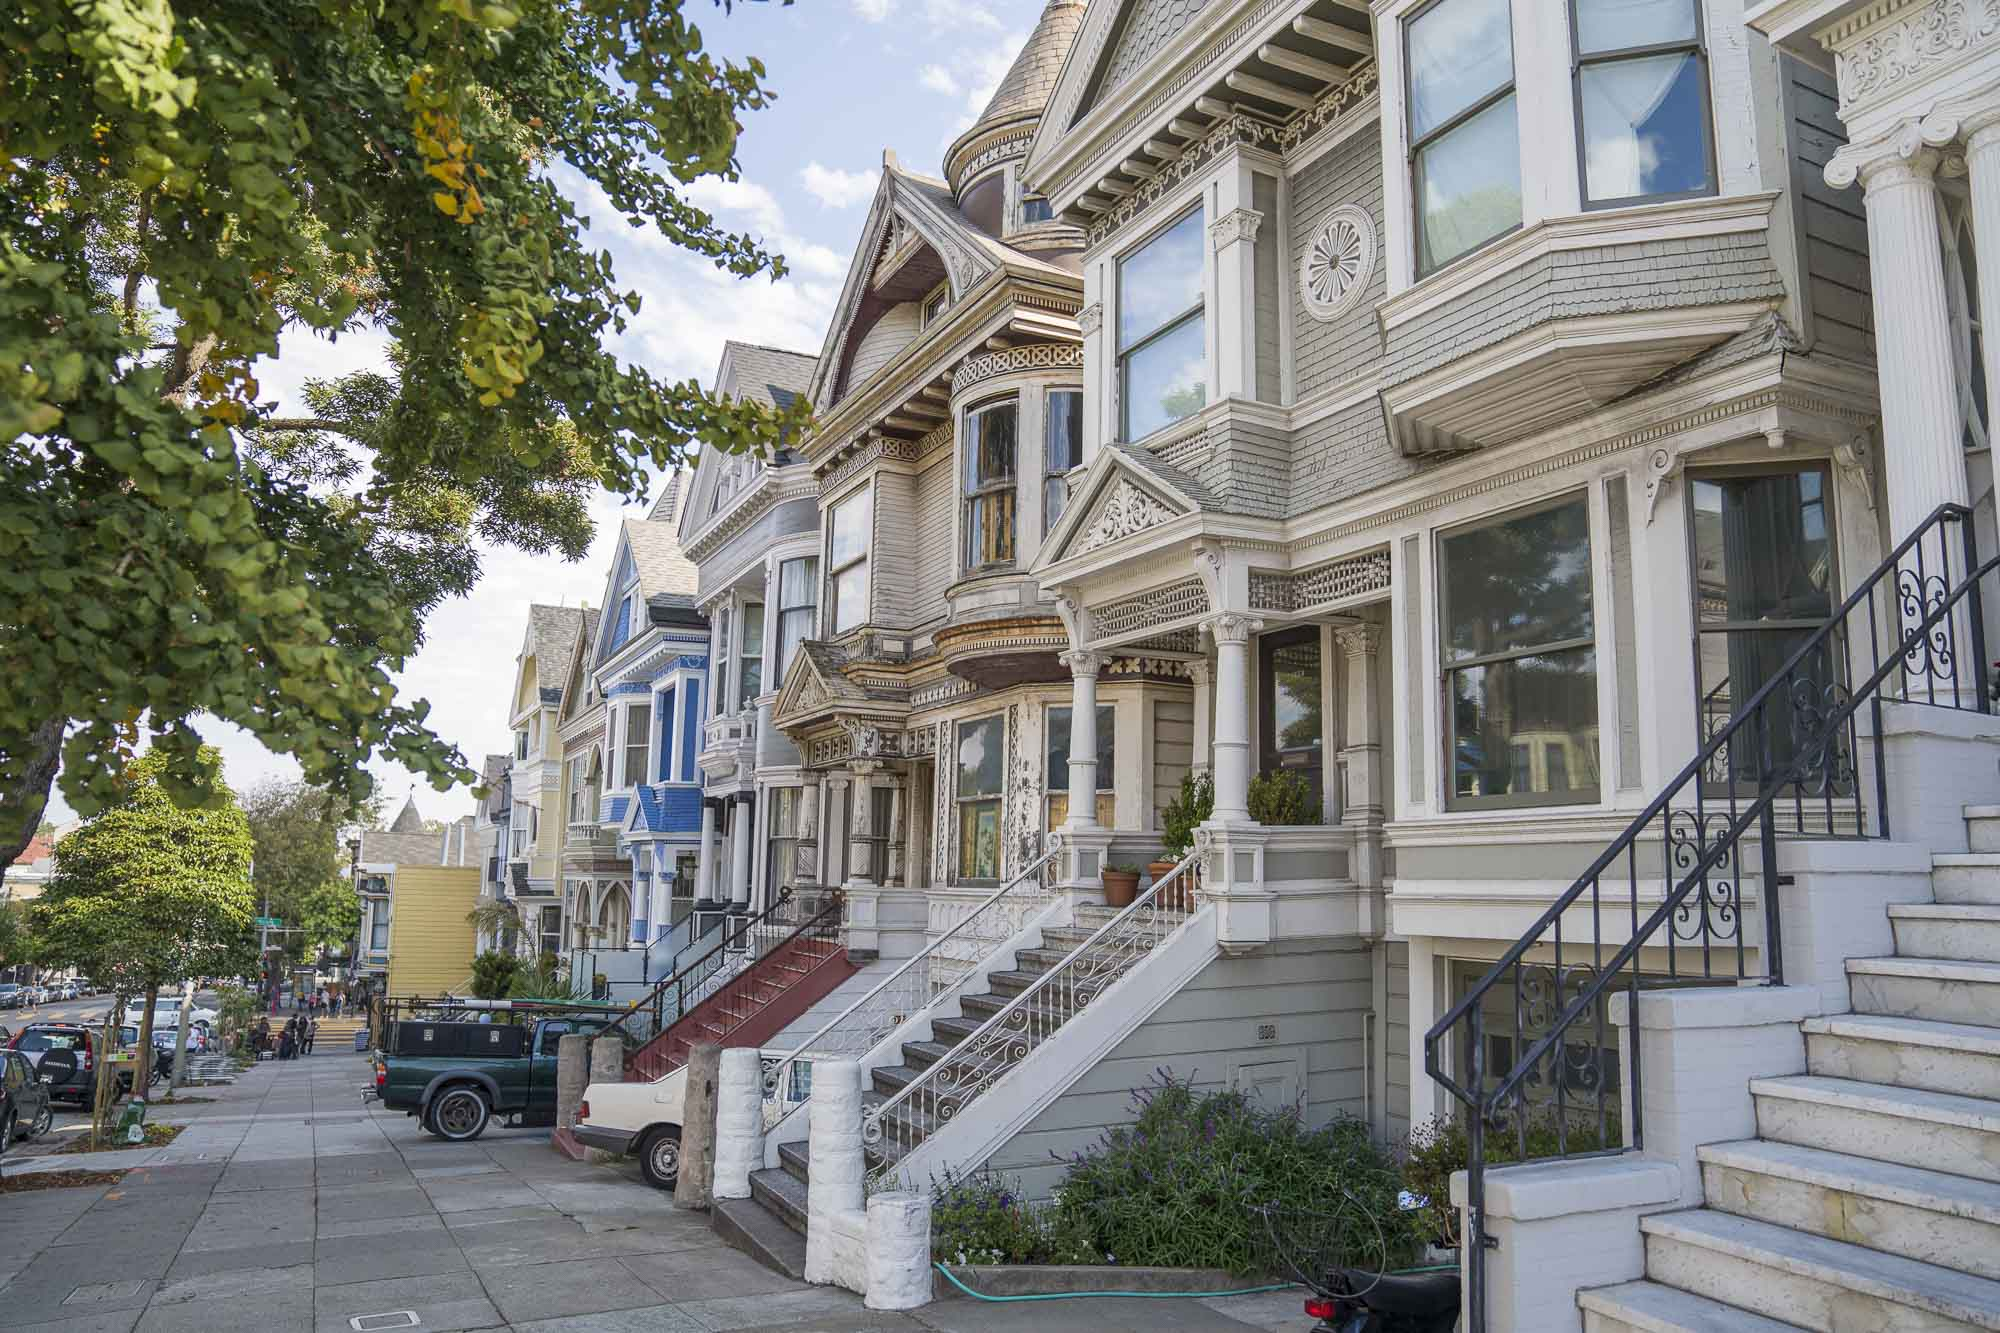 colorful san francisco homes lined along the sidewalk